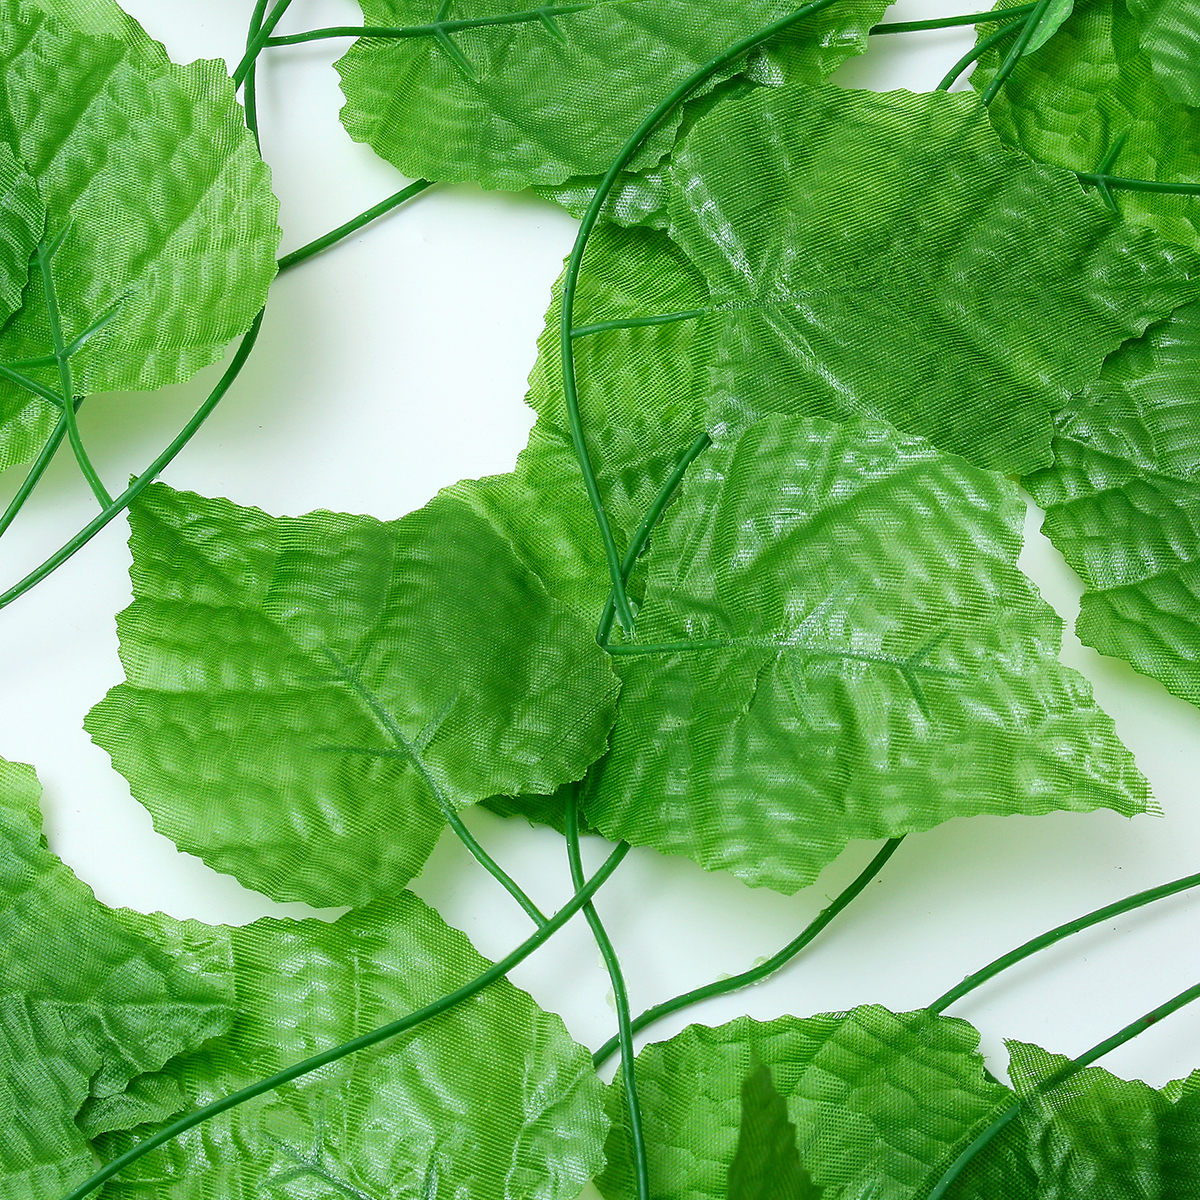 12Pcs/Pack Artificial Greenery Vine Artificial Ivy Leaves Hanging for Home Bathroom Garden Wedding Party Decor